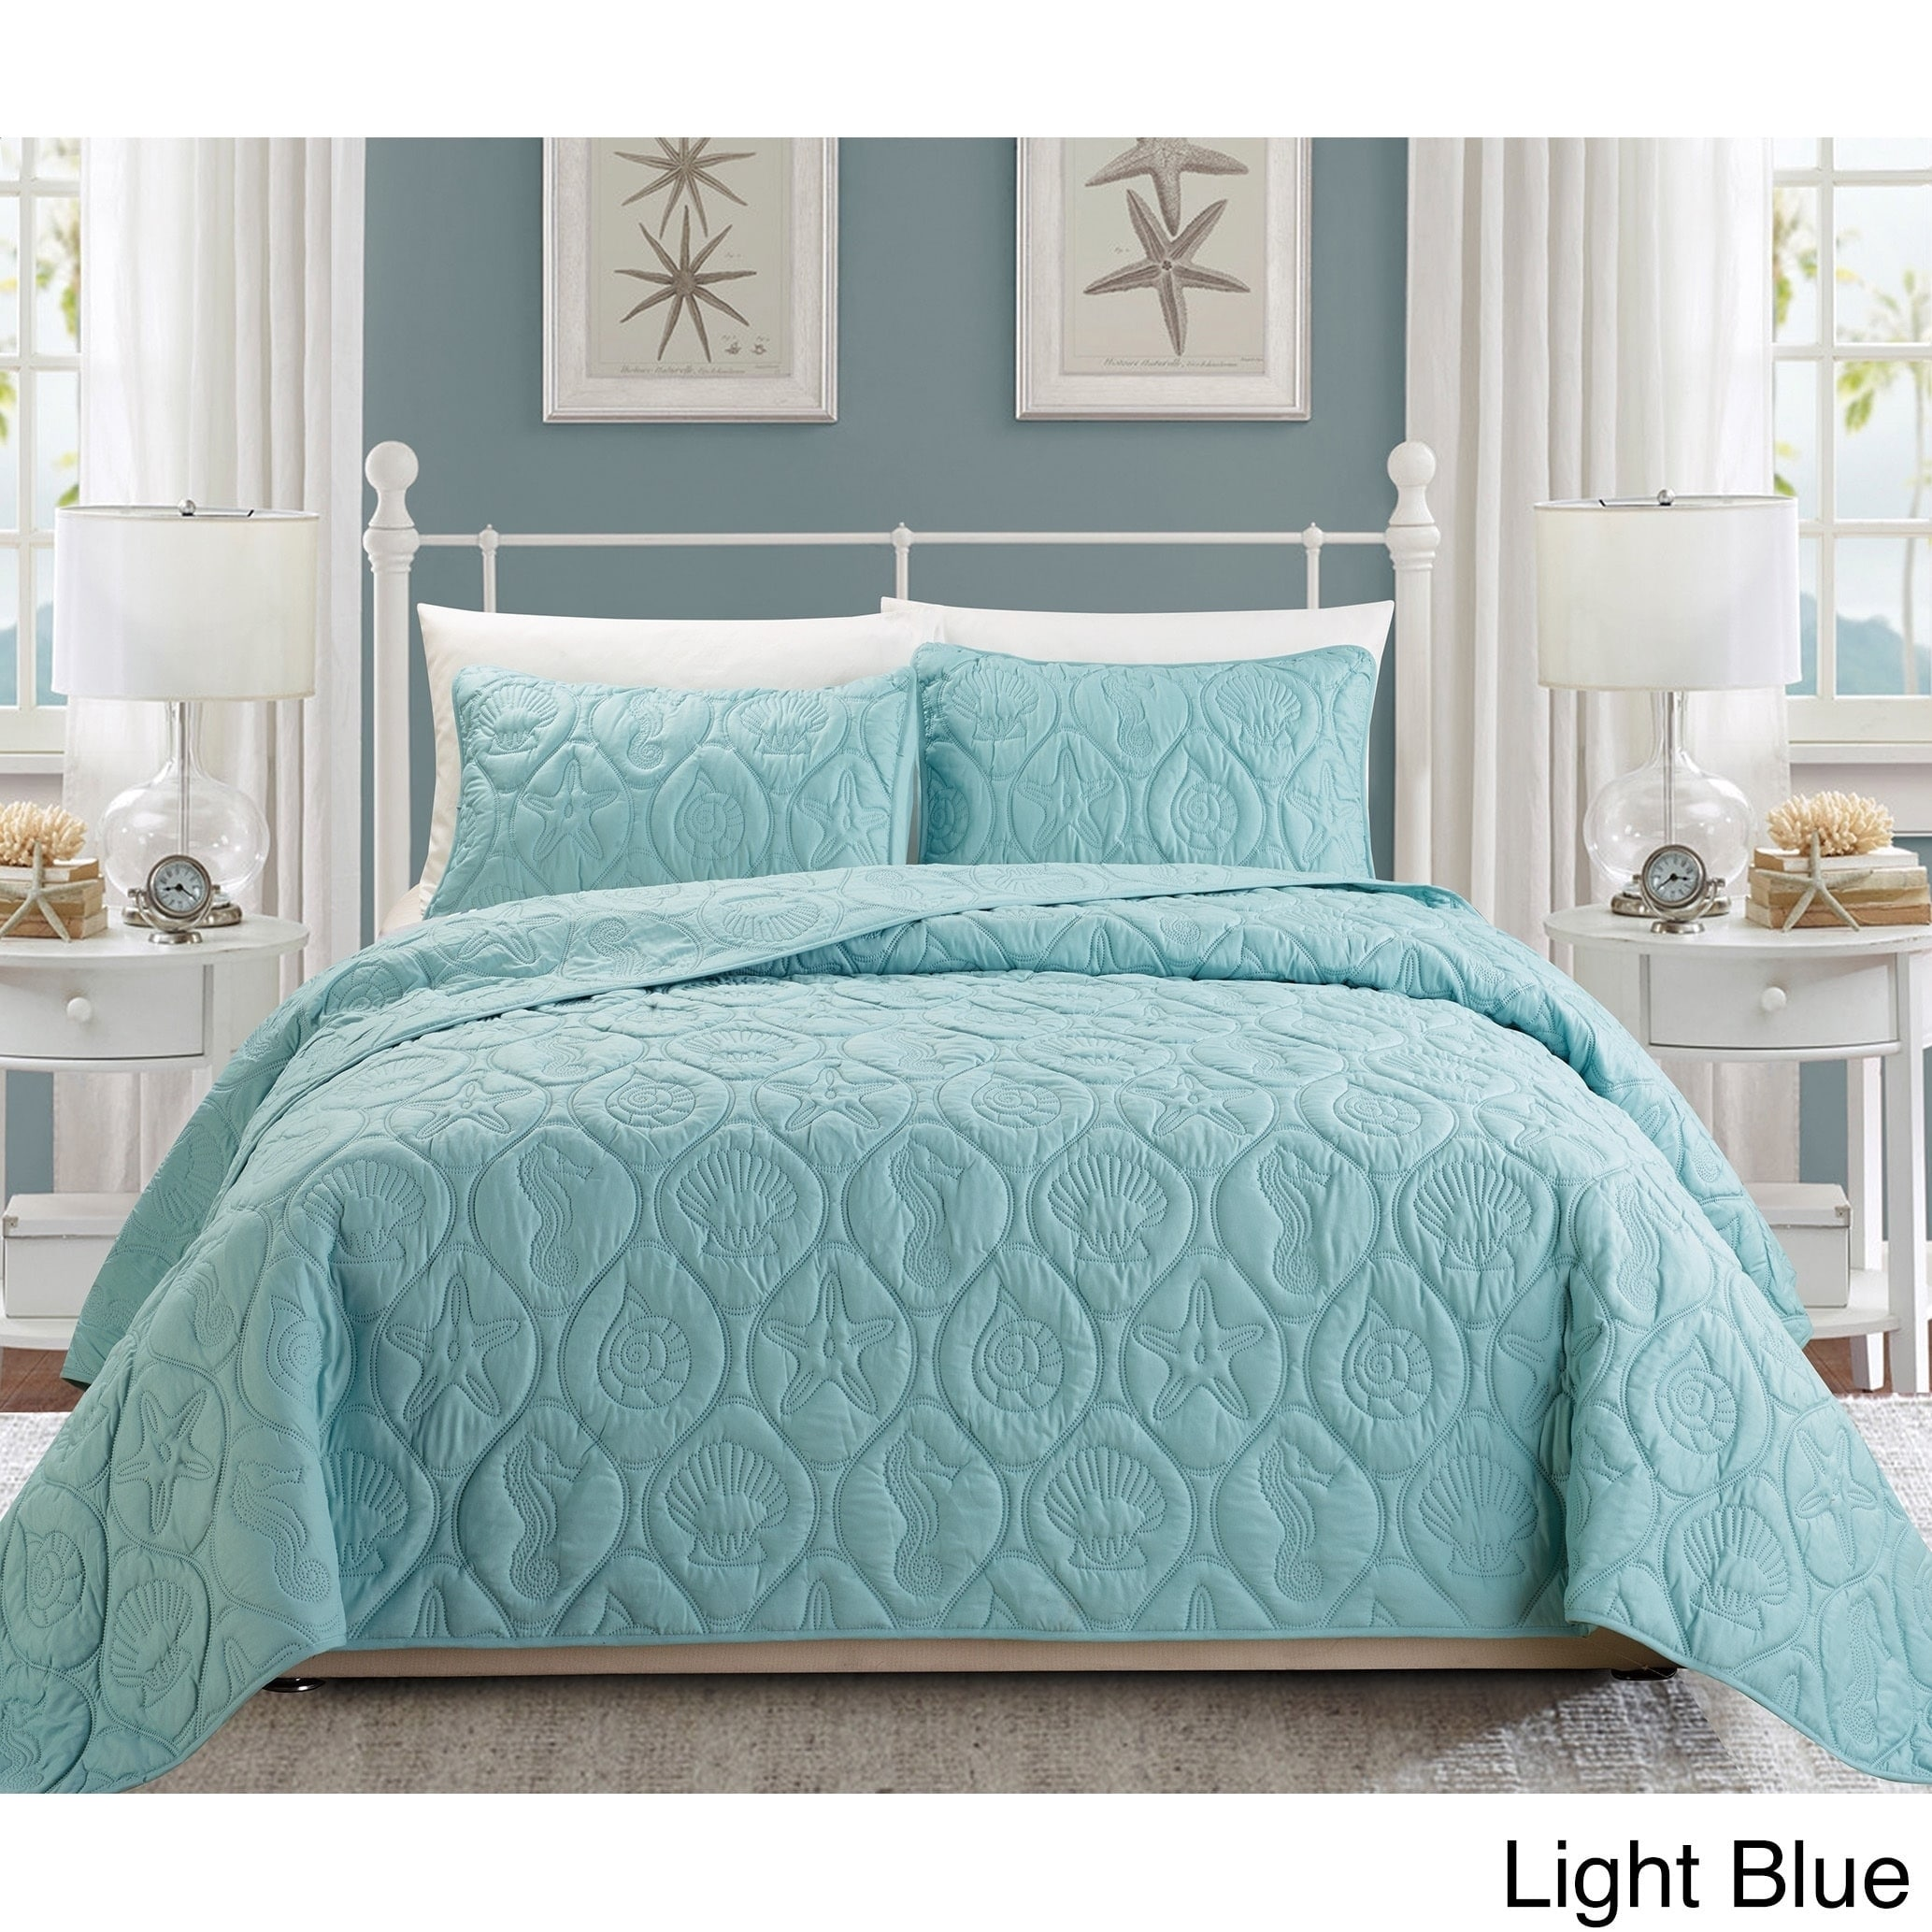 sets assorted comforters pottery oversized multi fashionable dream jessy coastal bedding zq turquoise barn teen precious target tween set comforter size home queen touch king thrifty